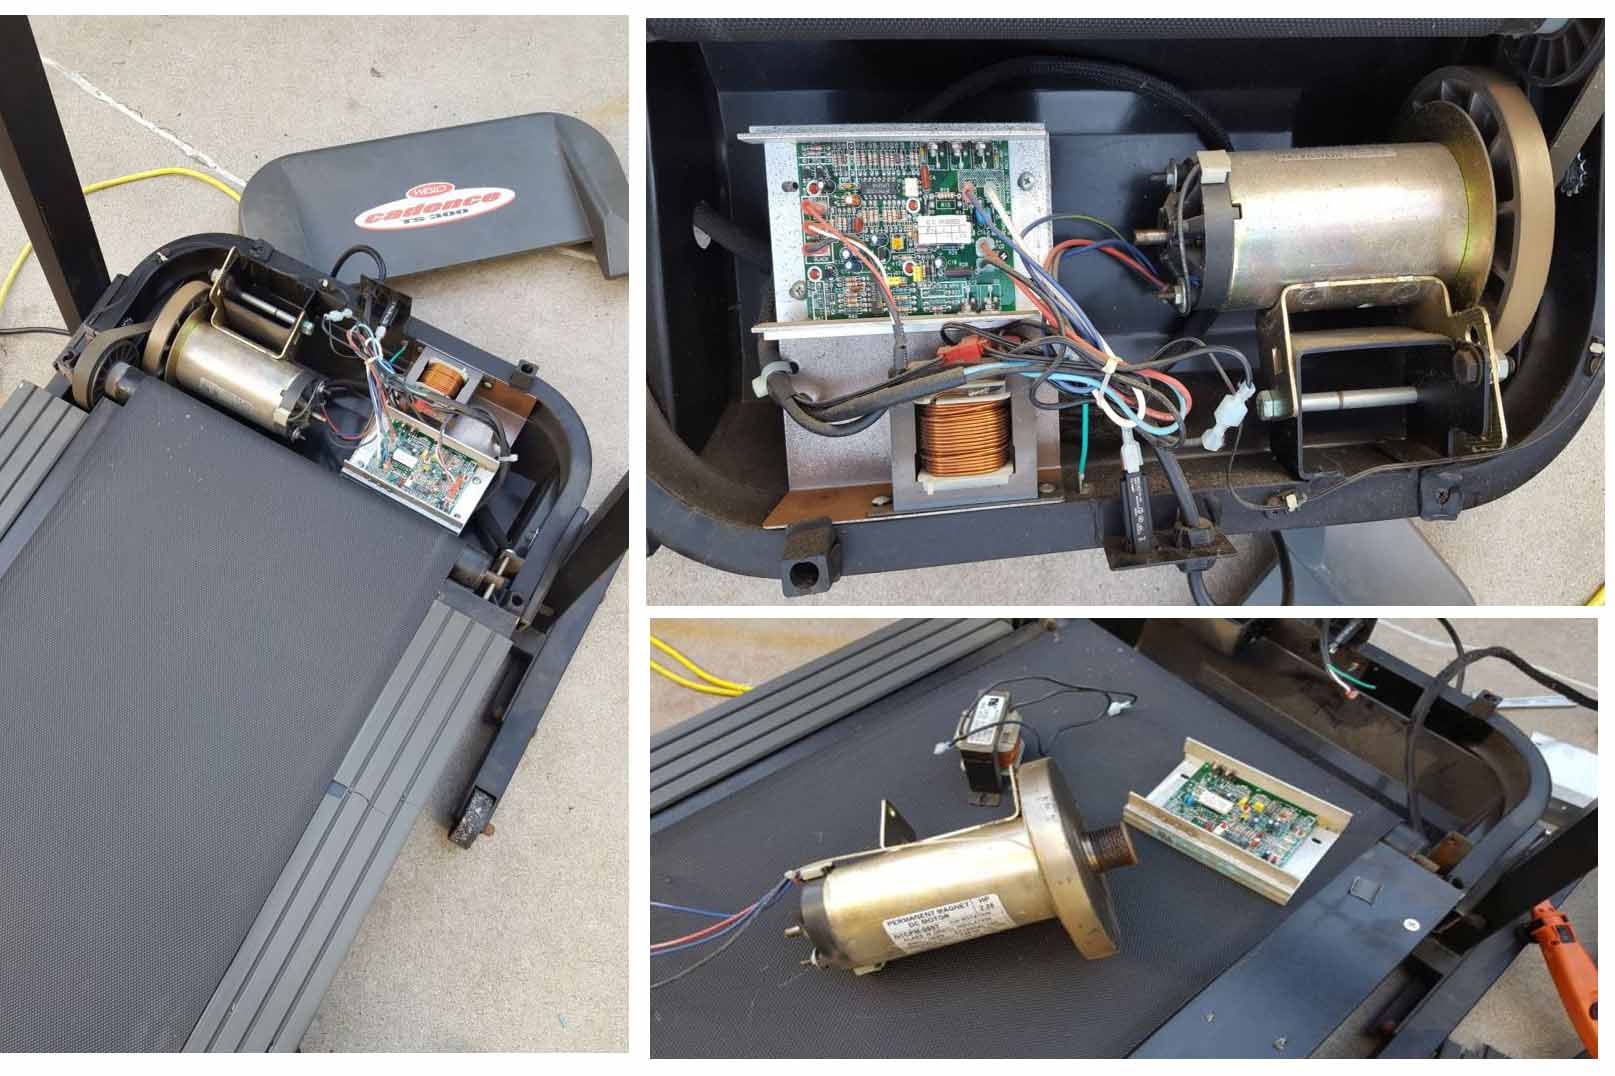 treadmill teardown for dummies continued in next post